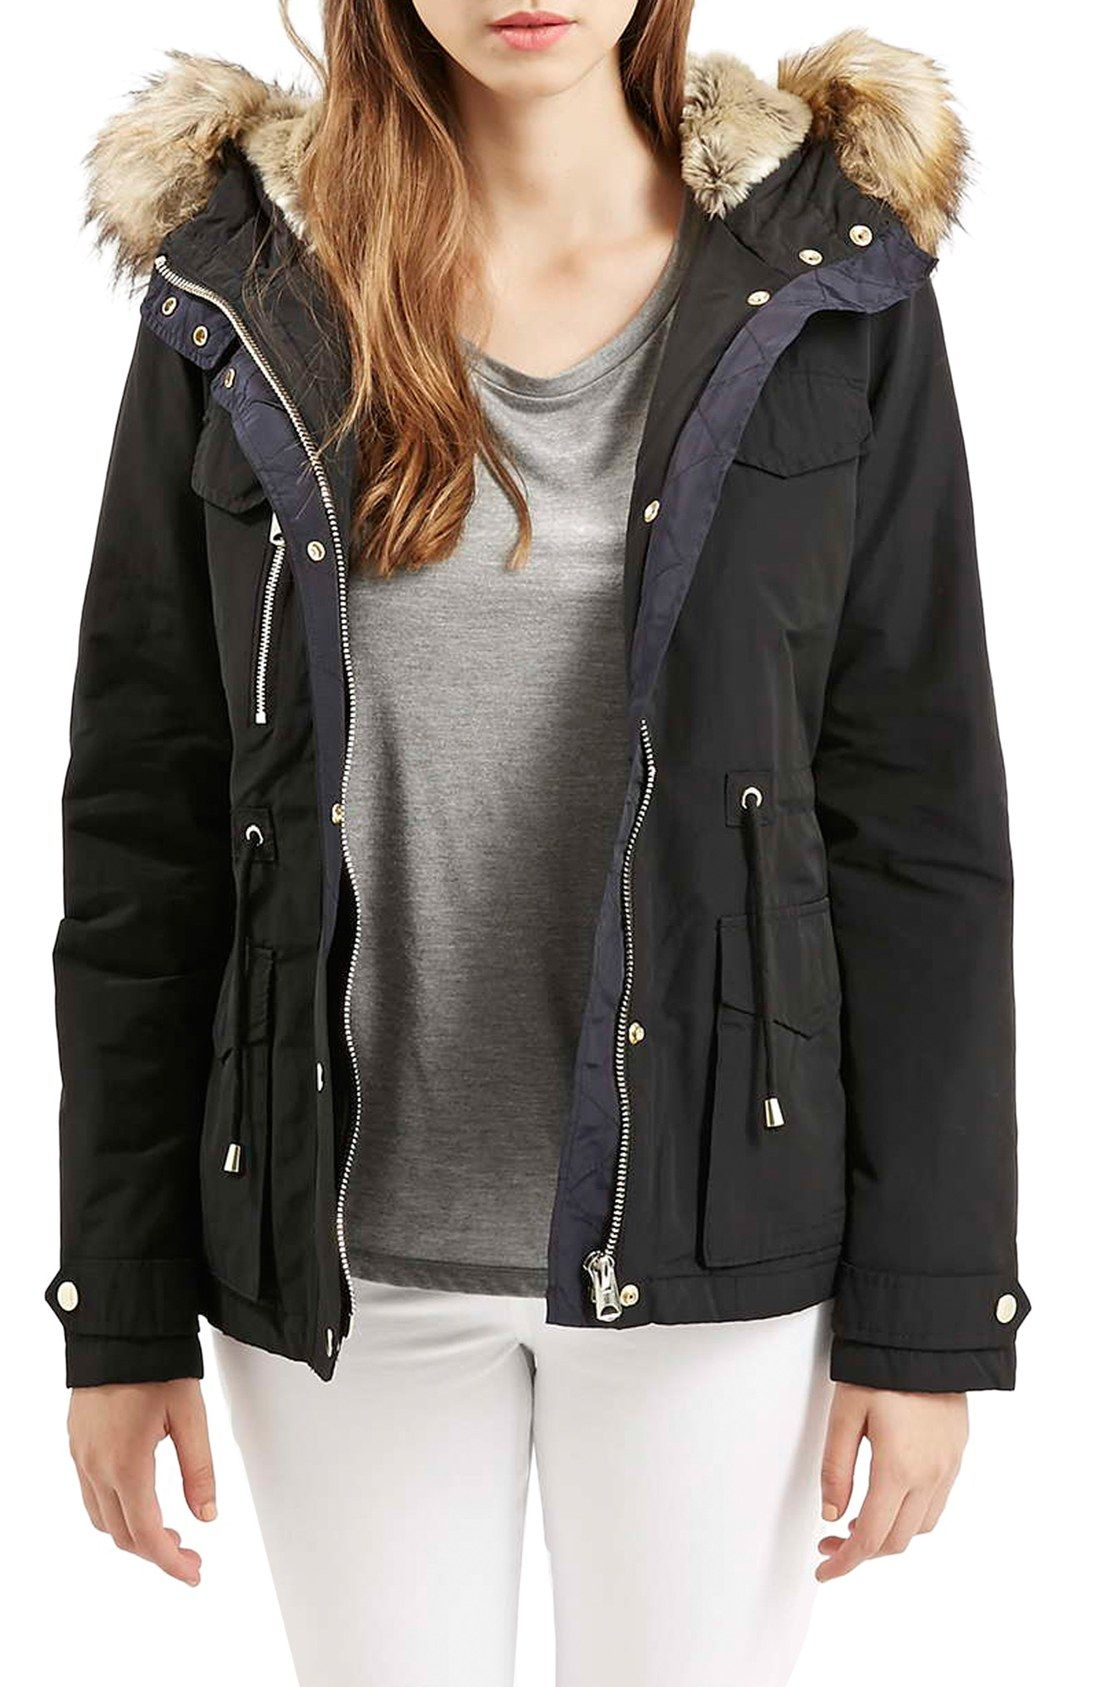 Topshop 'Jaxson' Short Hooded Parka with Faux Fur Trim | Wanted ...